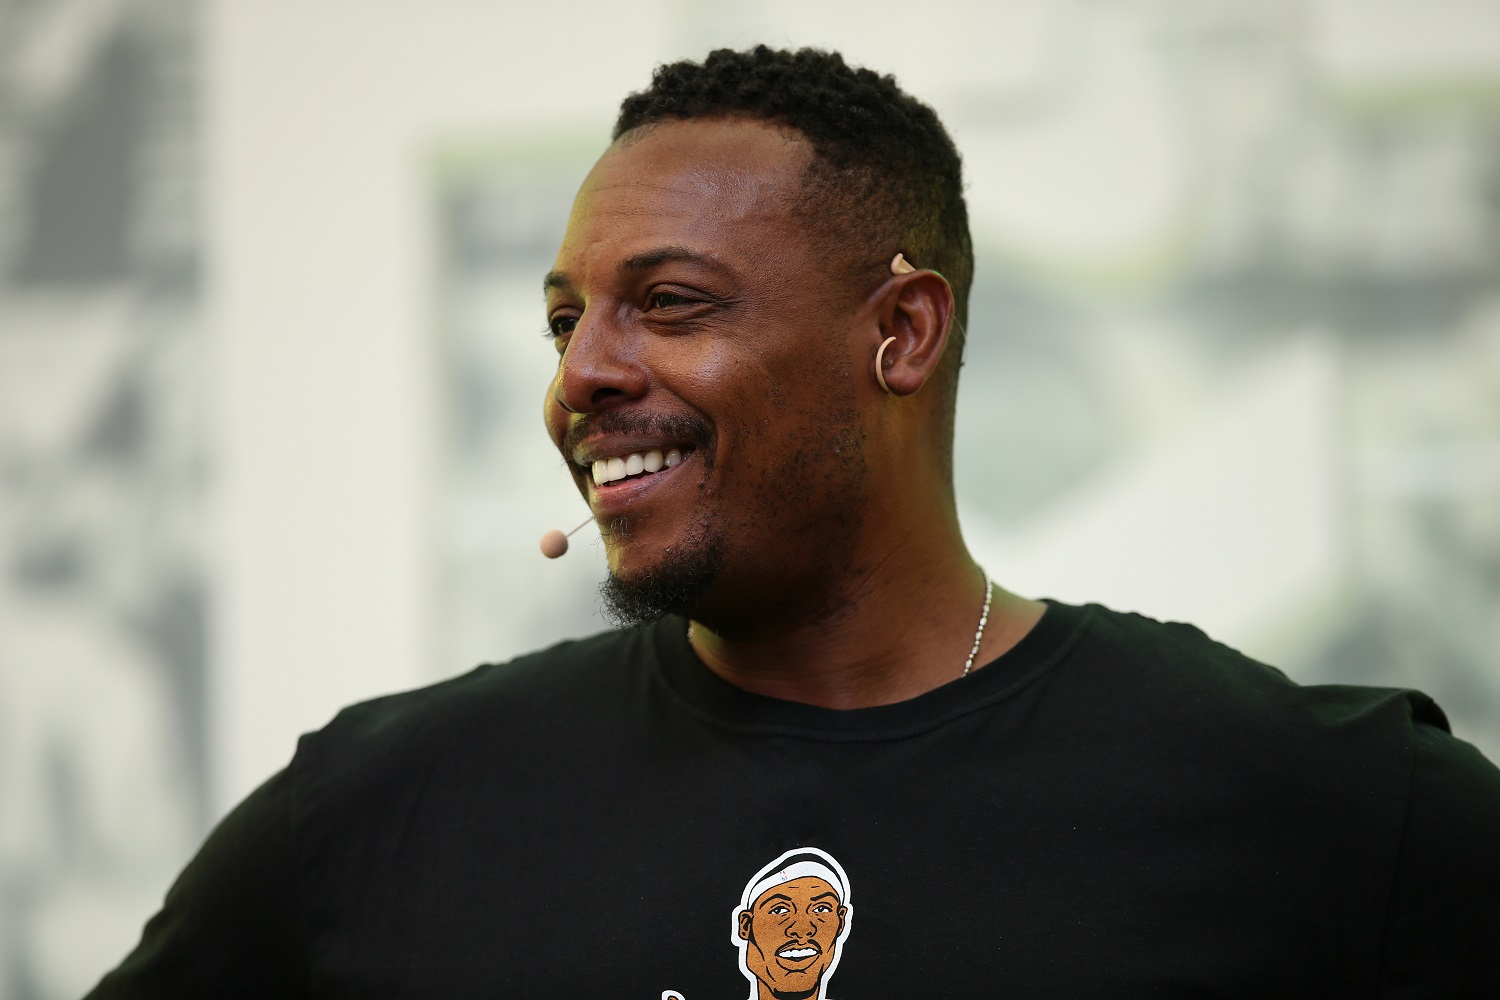 Paul Pierce joined ESPN after 19 Hall of Fame-worthy seasons as an NBA player, primarily with the Boston Celtics.